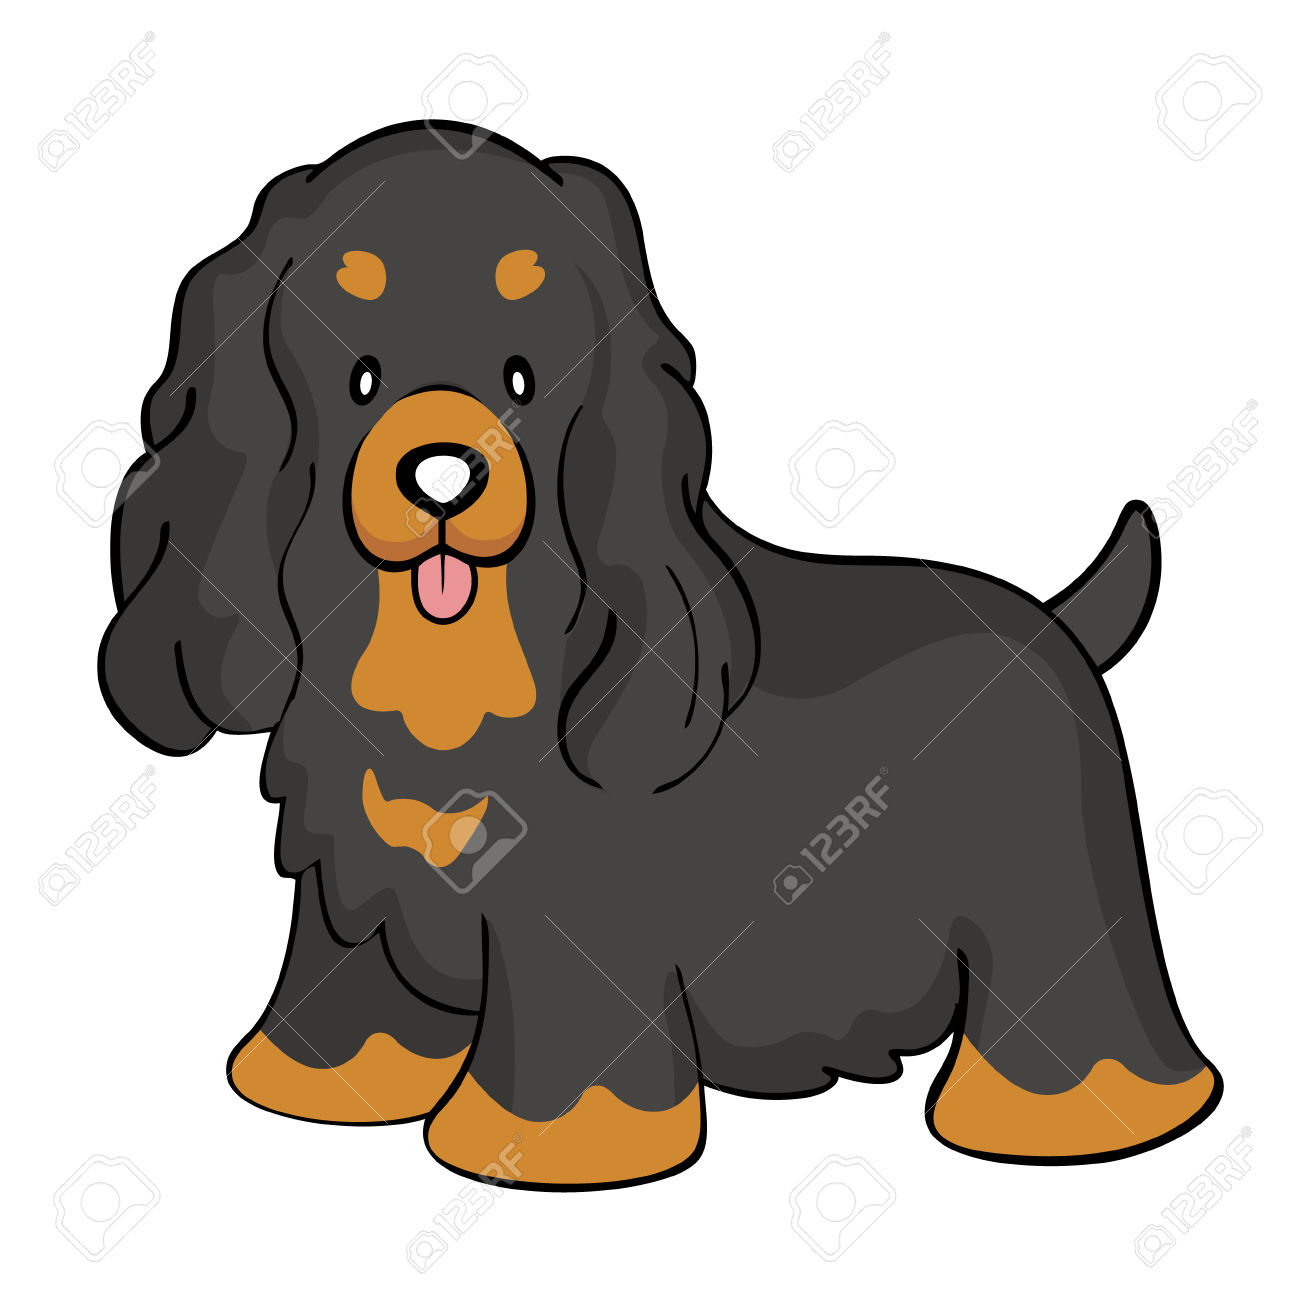 Cocker Spaniel clipart #4, Download drawings